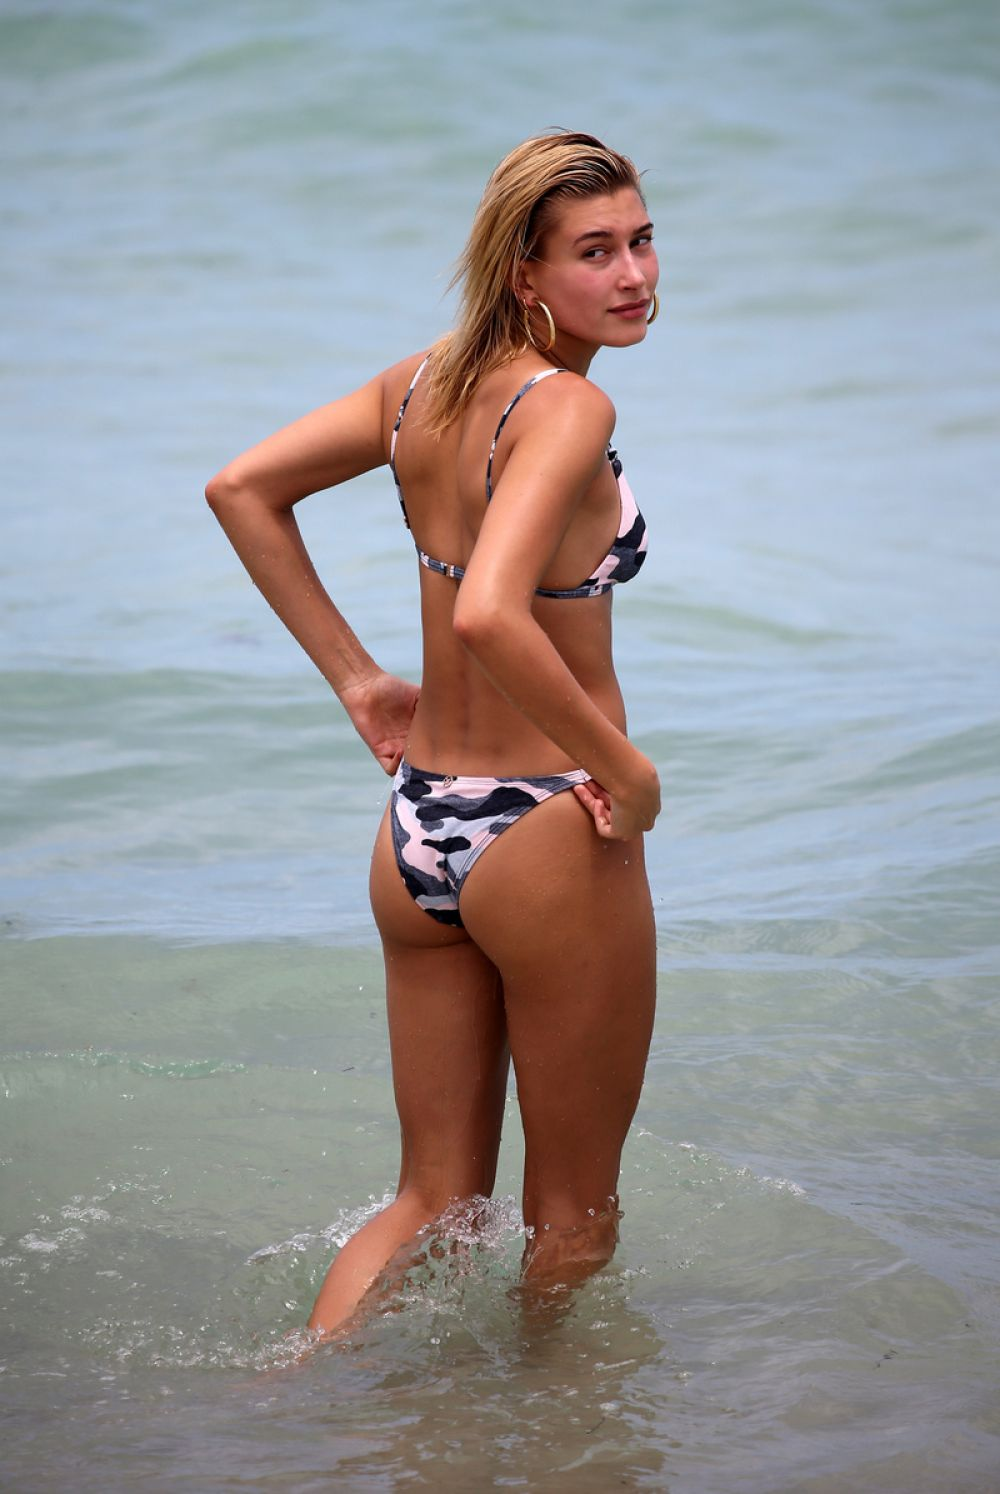 hailey baldwin - photo #46